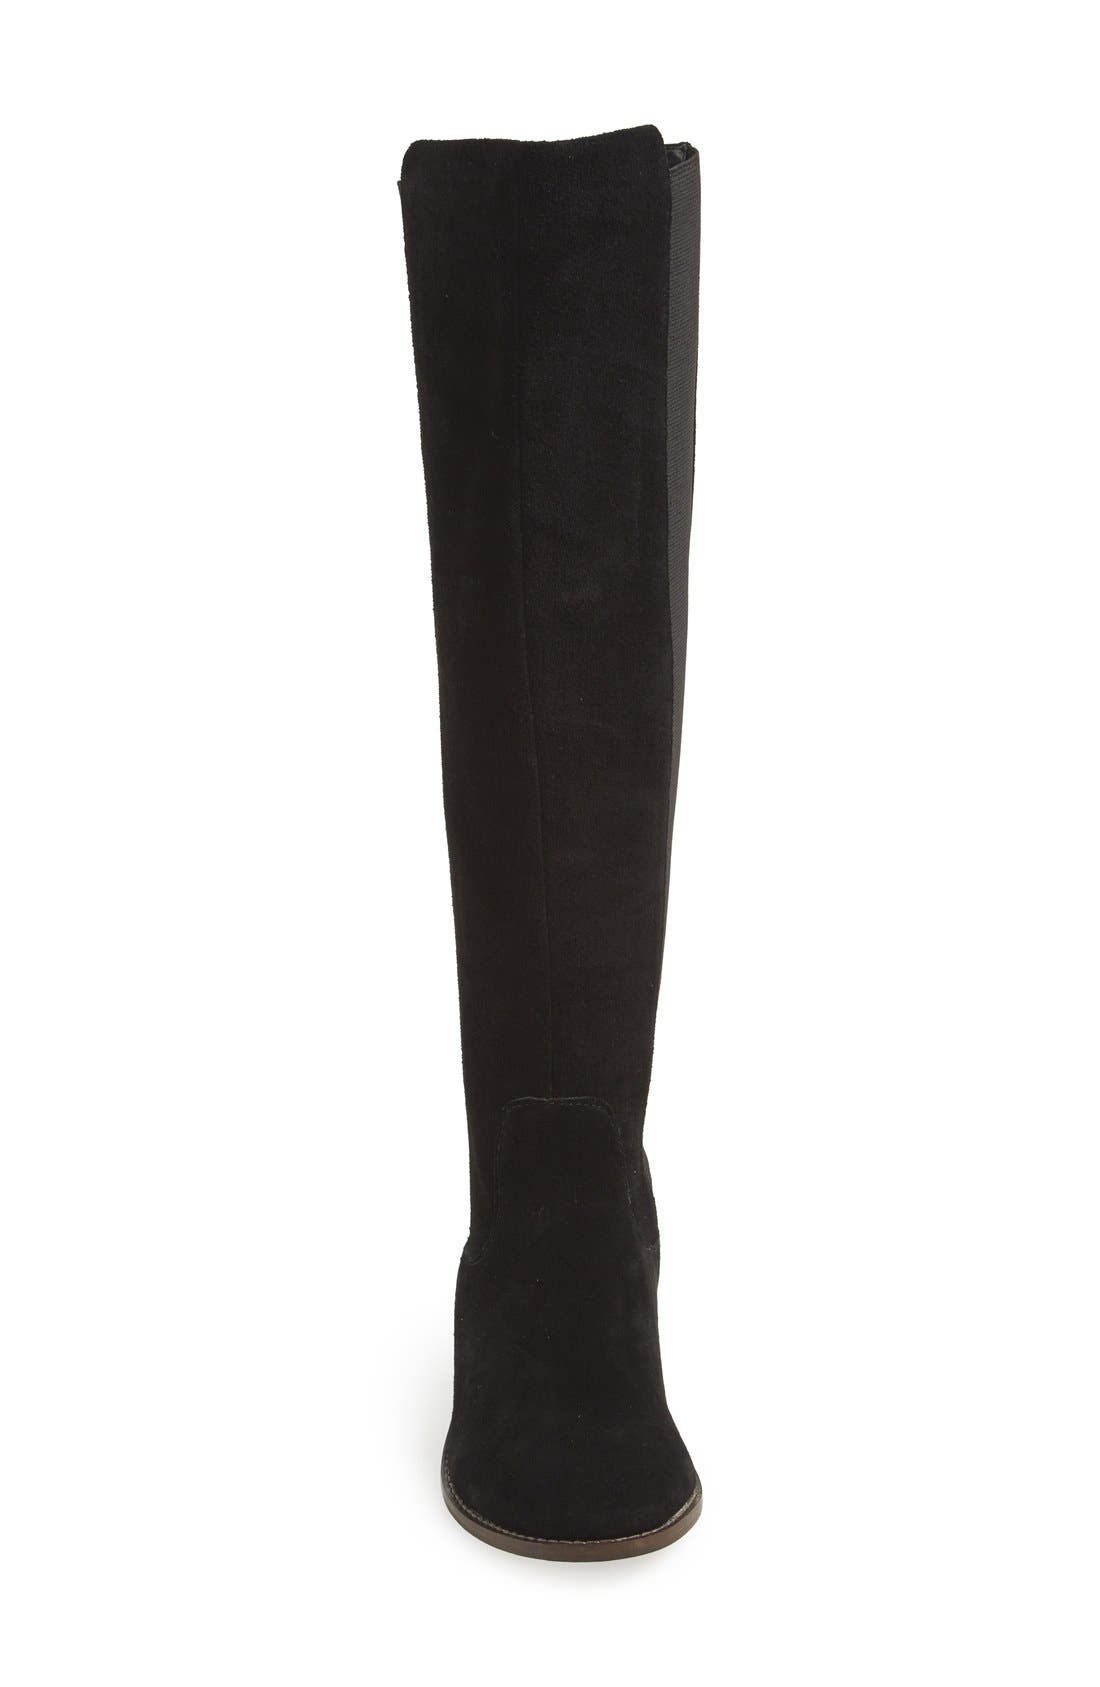 'Timber' Suede Knee High Boot,                             Alternate thumbnail 2, color,                             001